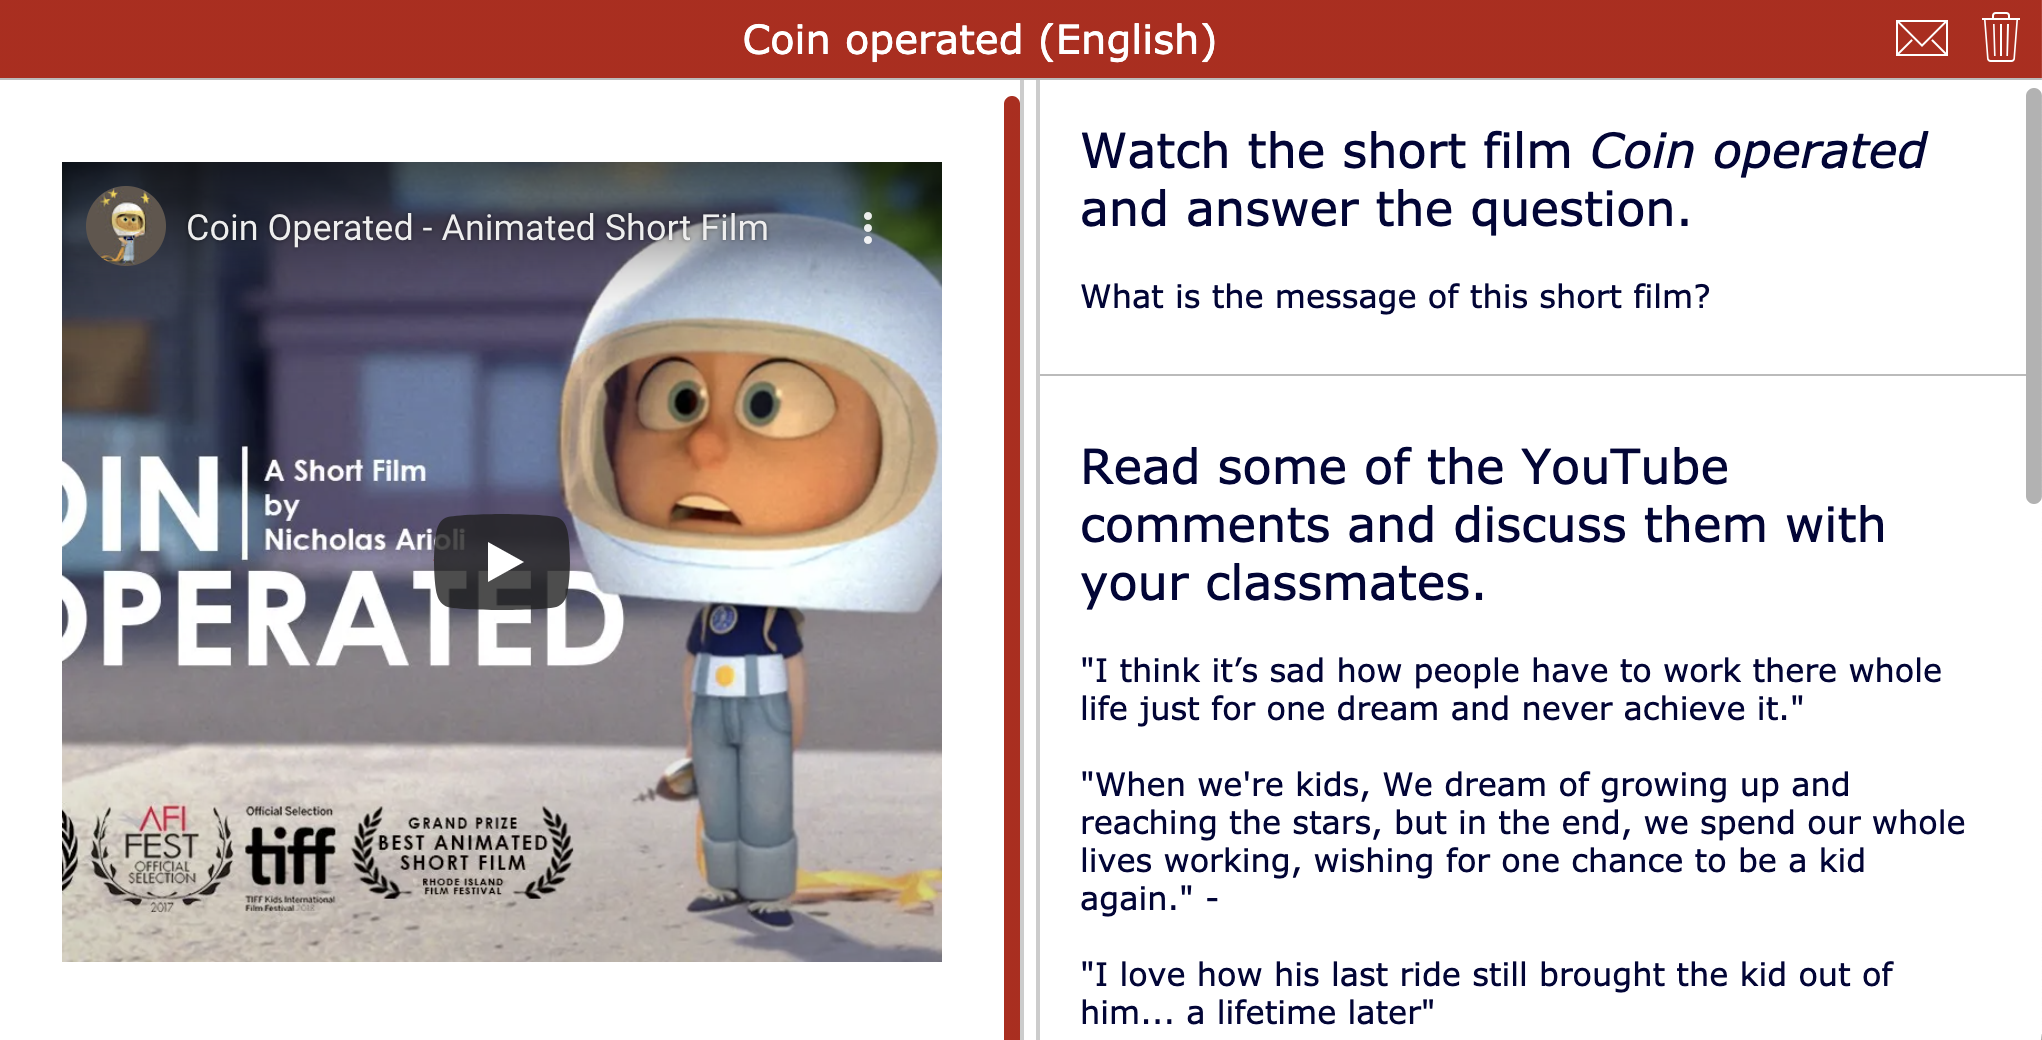 Short film - Coin operated - Youtube comments lesson activity